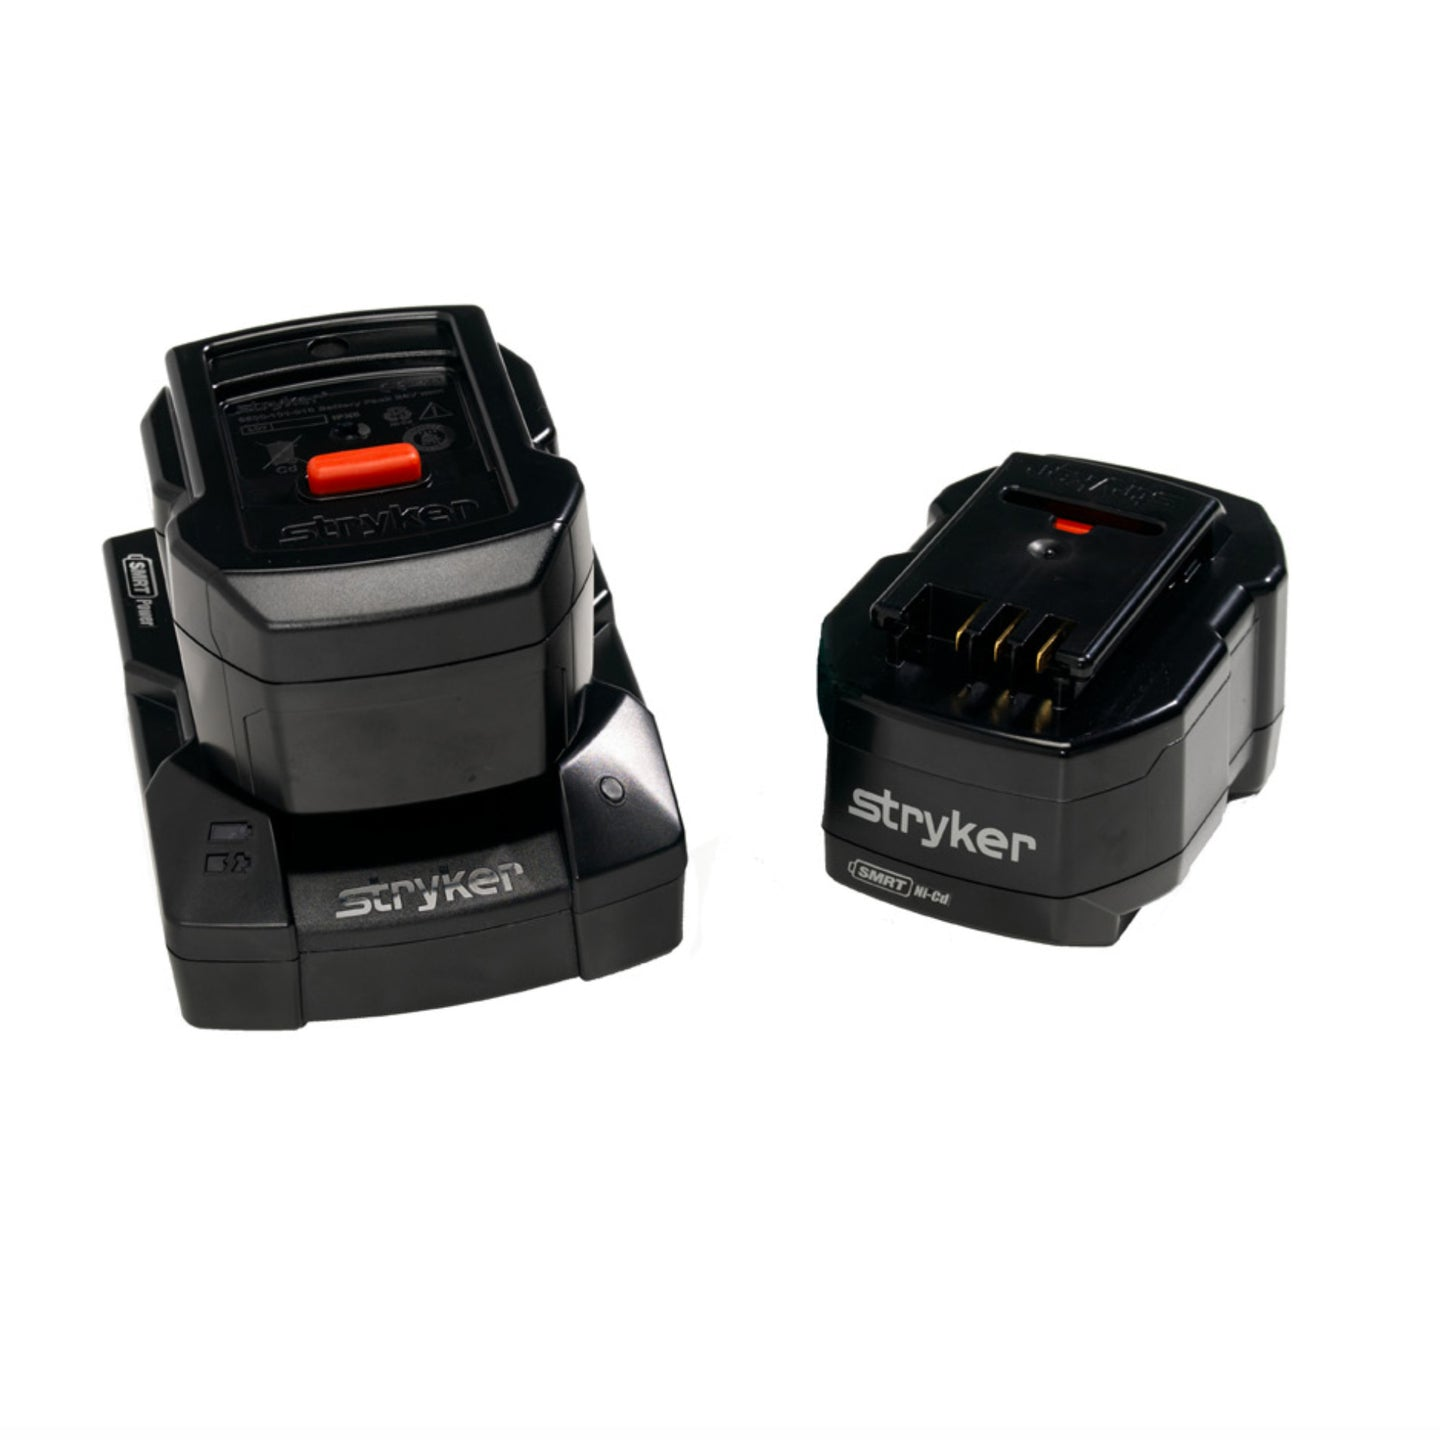 New Stryker SMRT Battery Power Kit For Power Pro Includes Two Batteries, Charger base, Power Cable